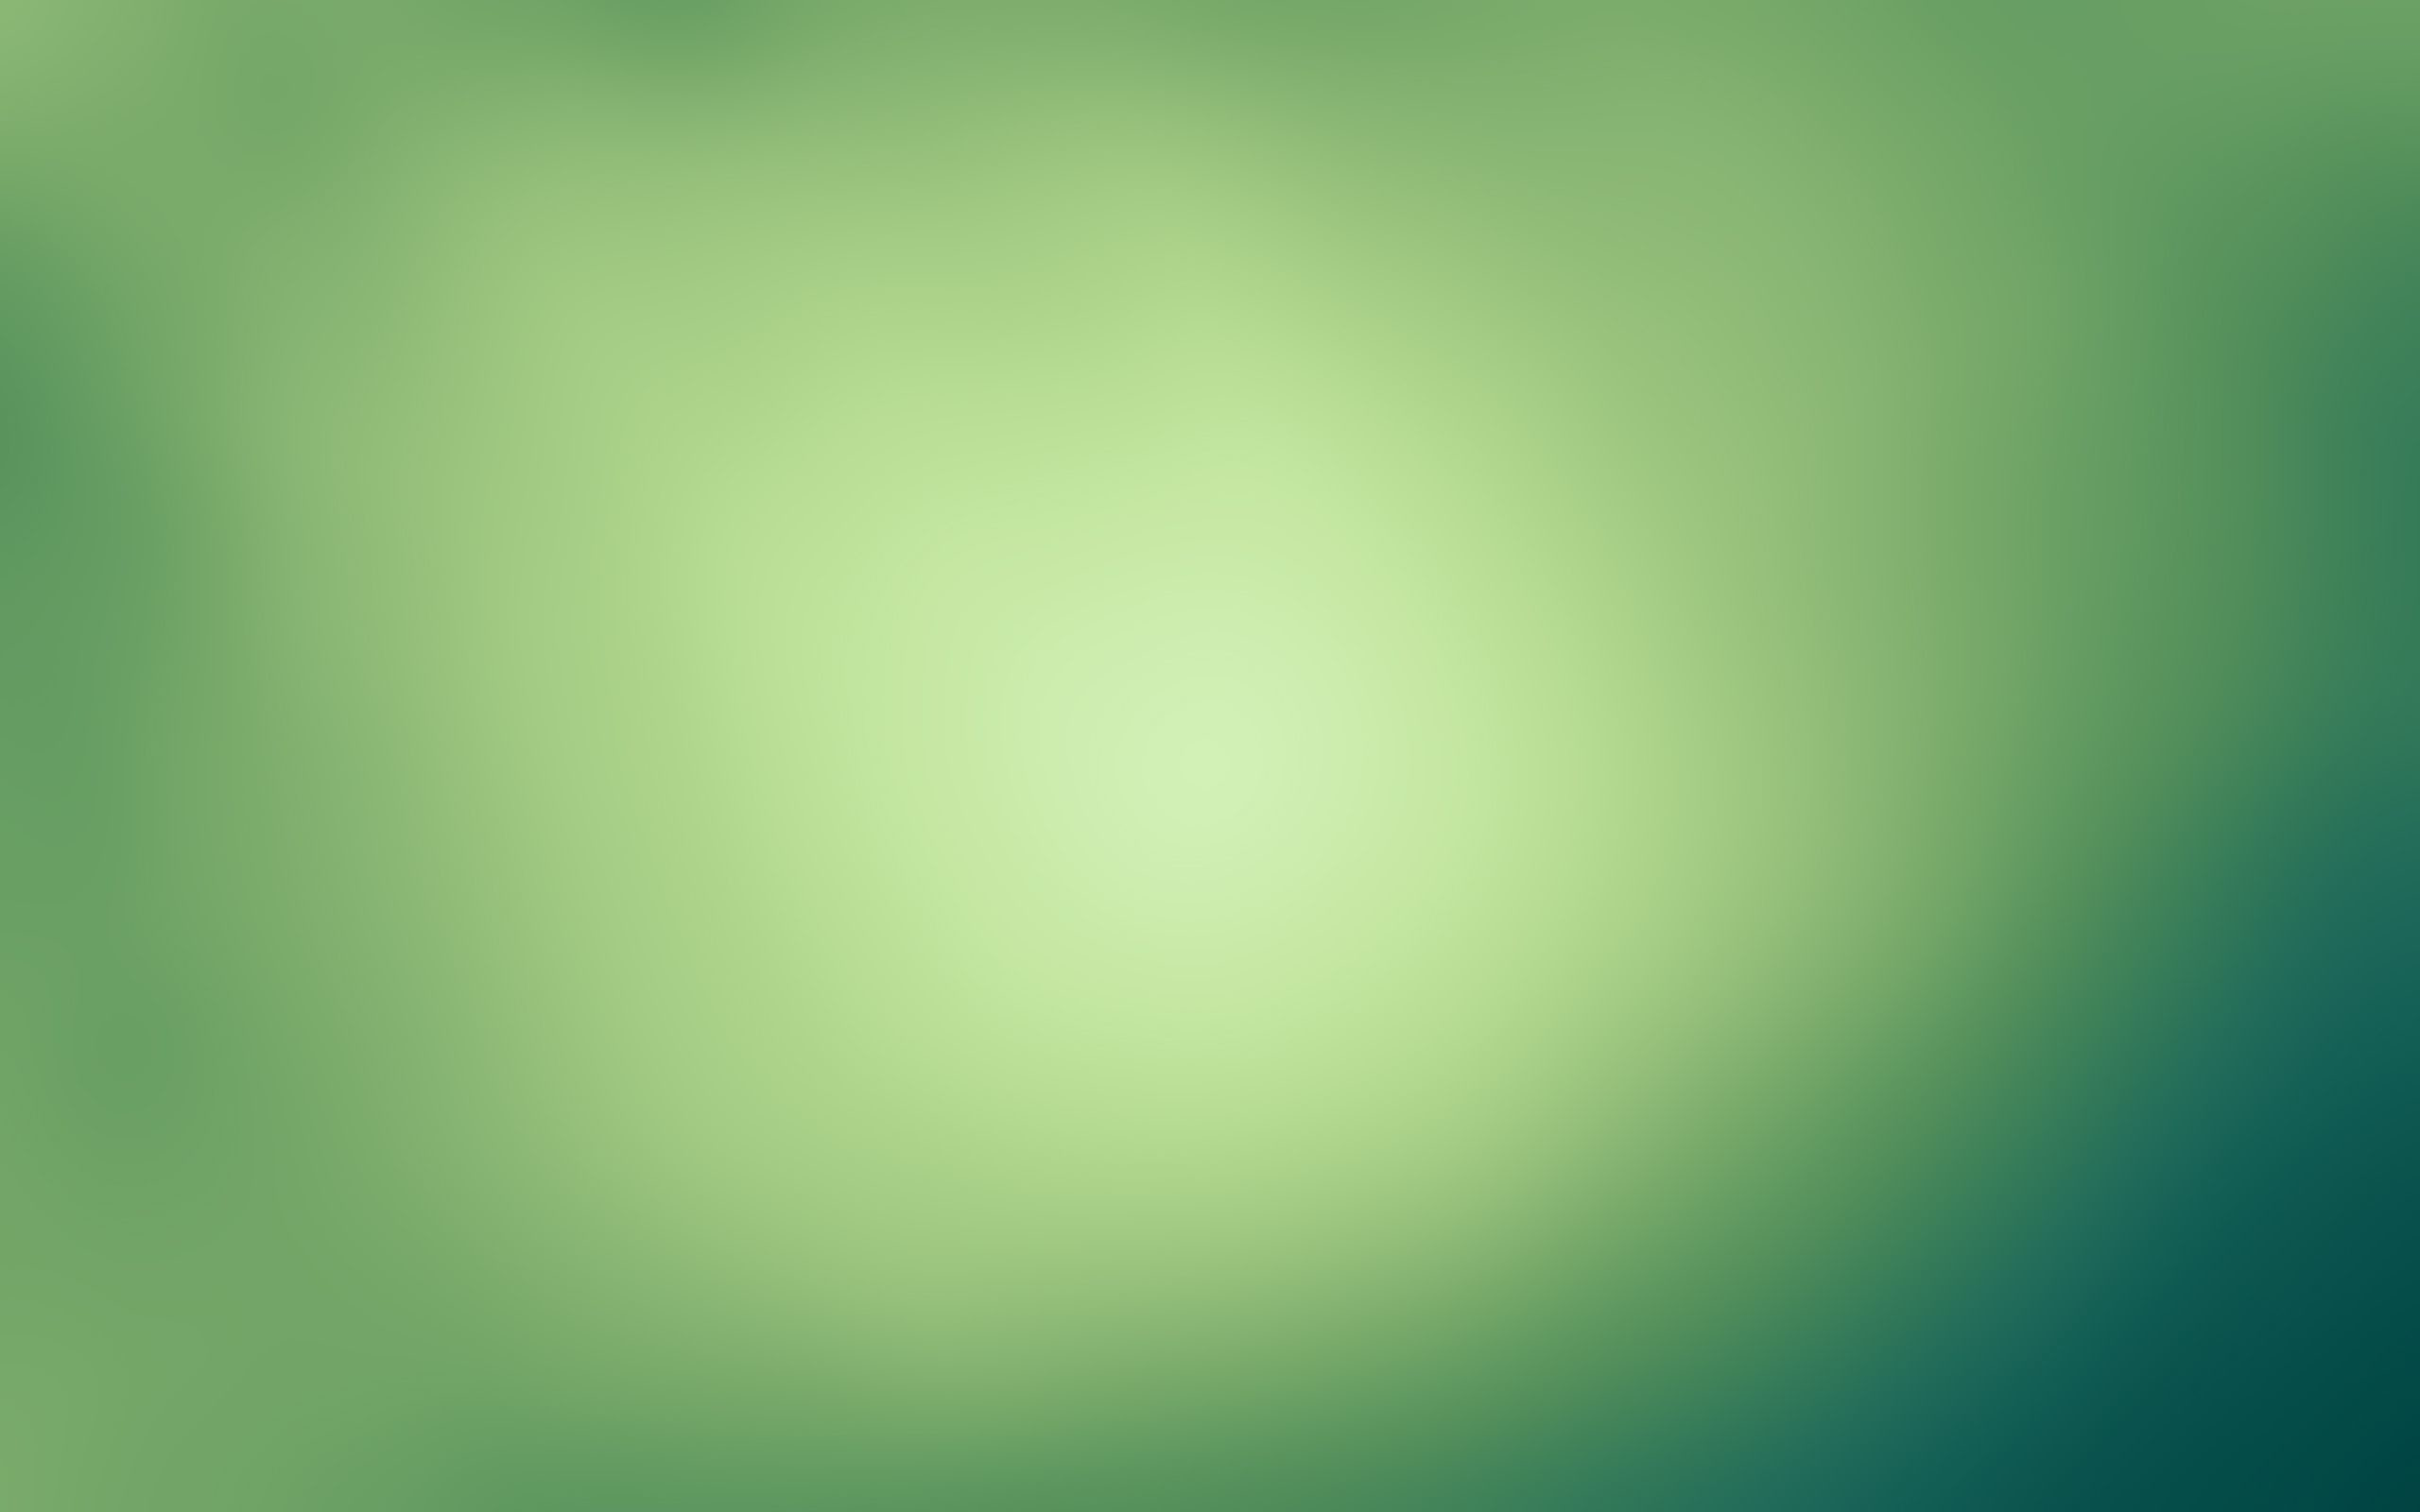 Res: 2560x1600, Free Solid Color Backgrounds | Green Color, Lightness and Darkness Differs,  Single Color Wallpaper